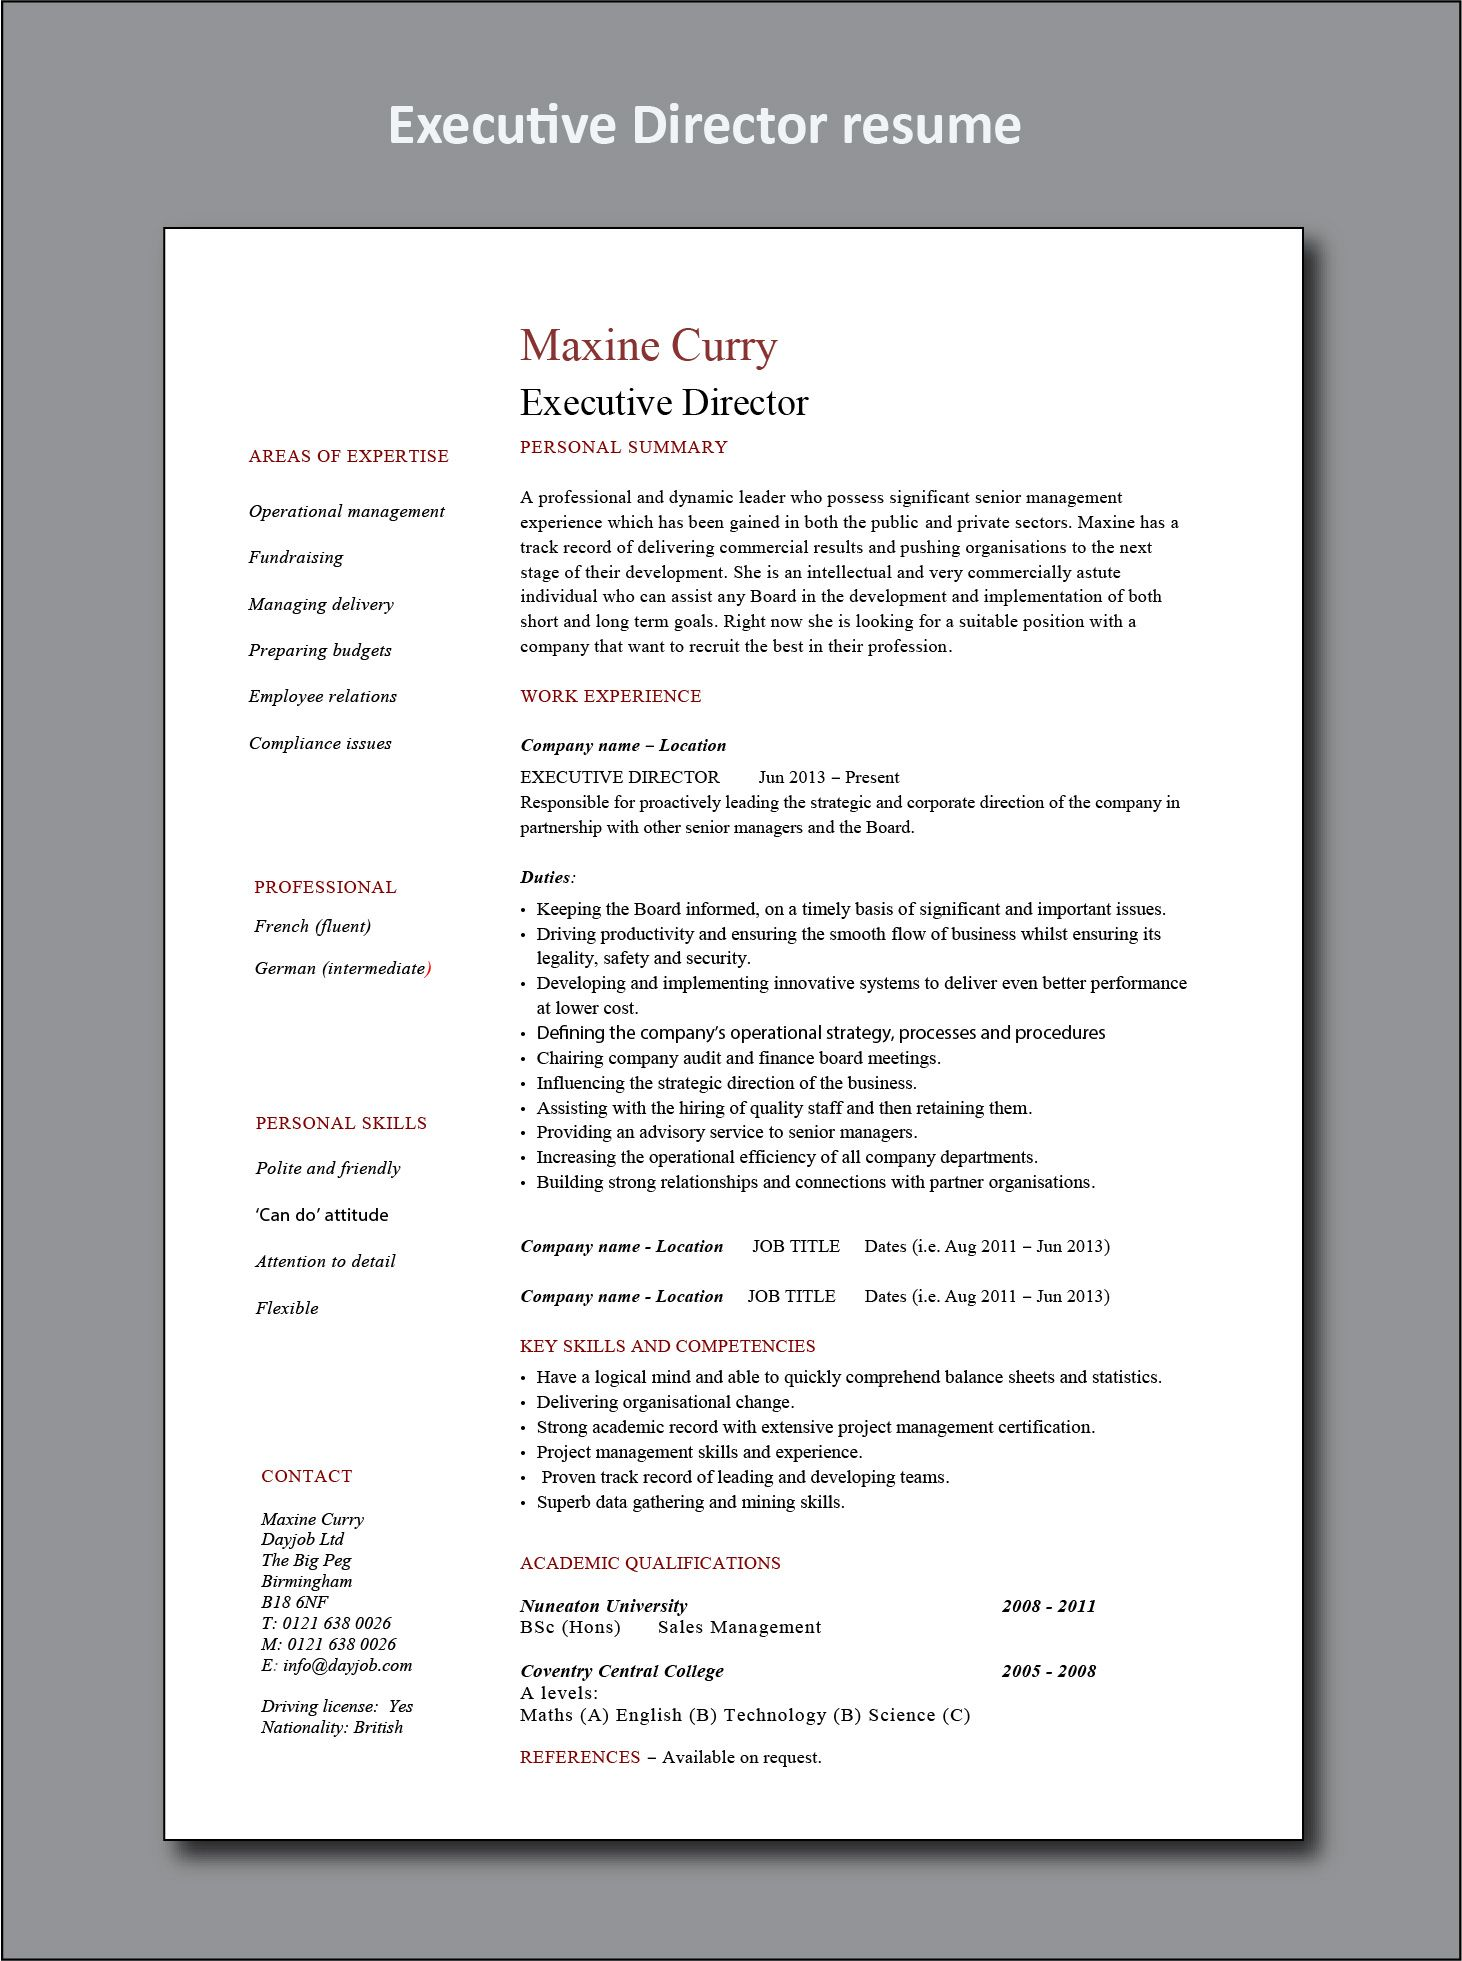 Executive Director resume example